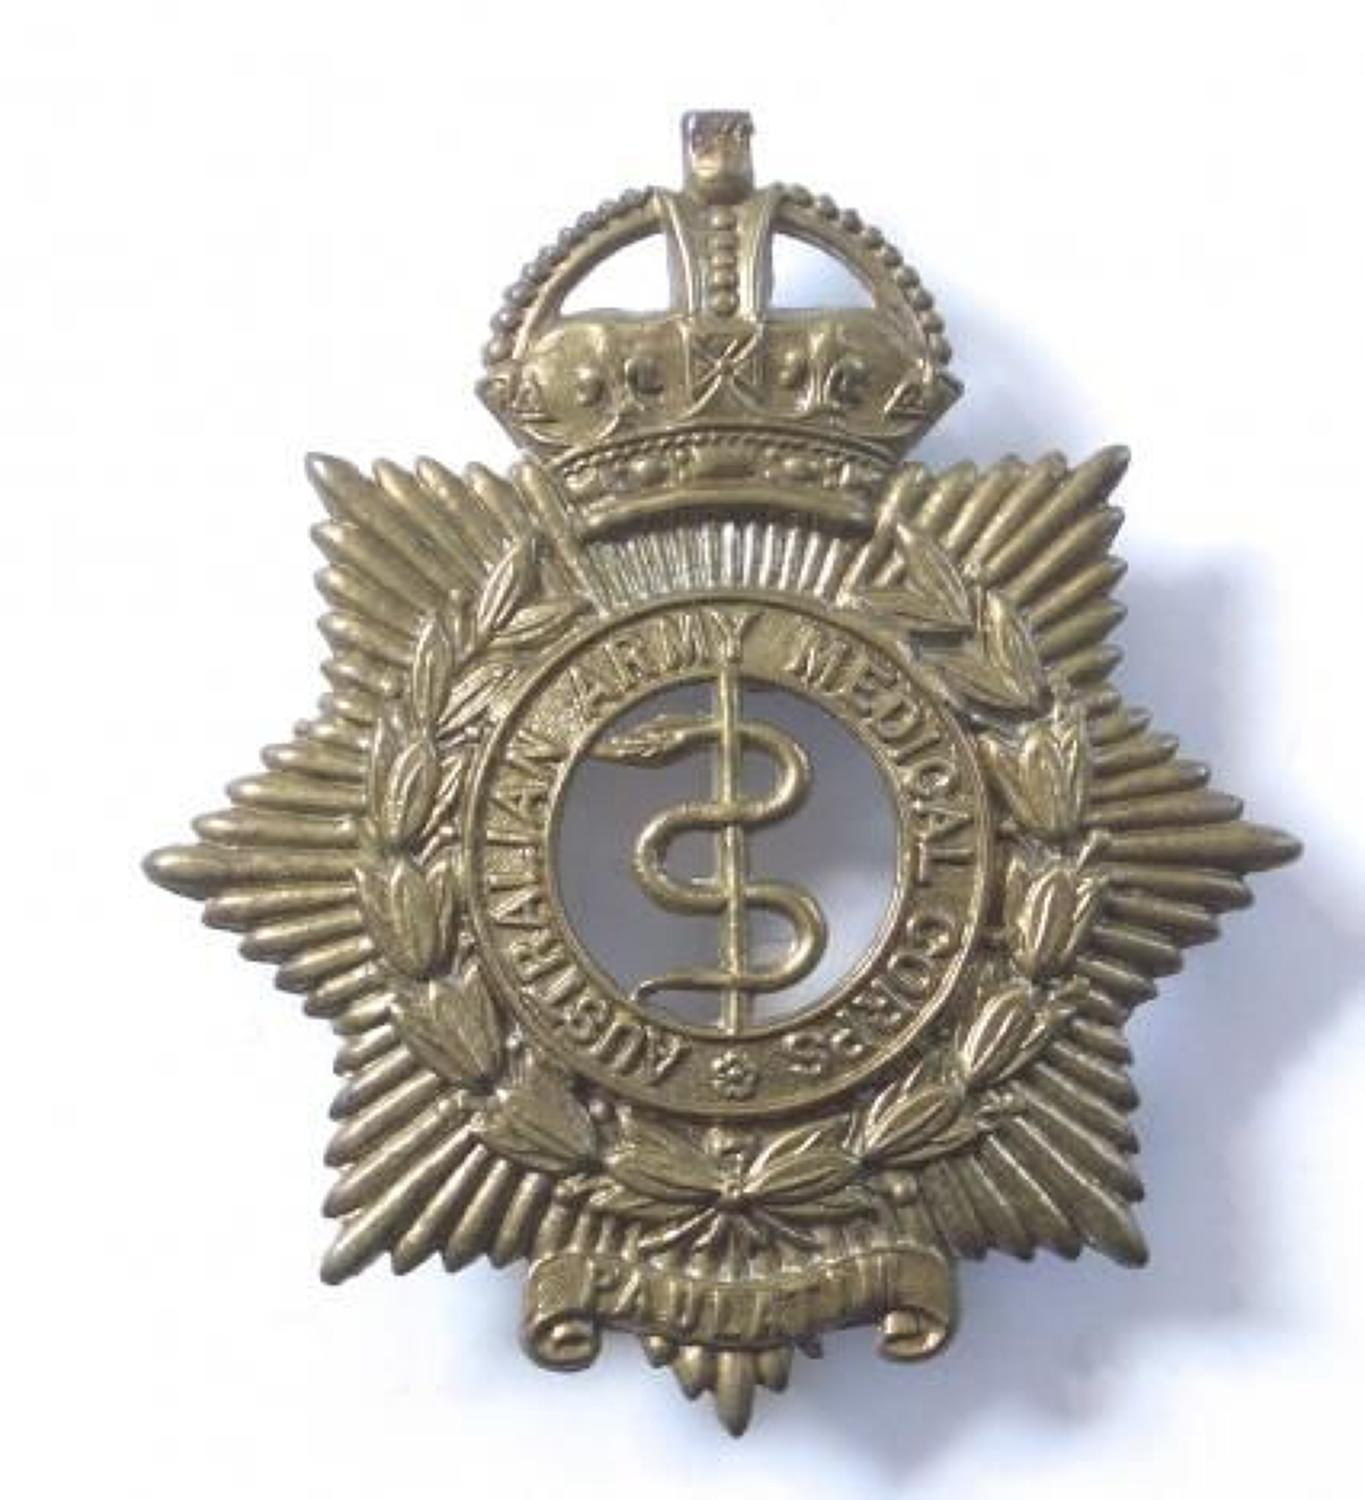 Australian Army Medical Corps OR's slouch hat badge circa 1930-42.